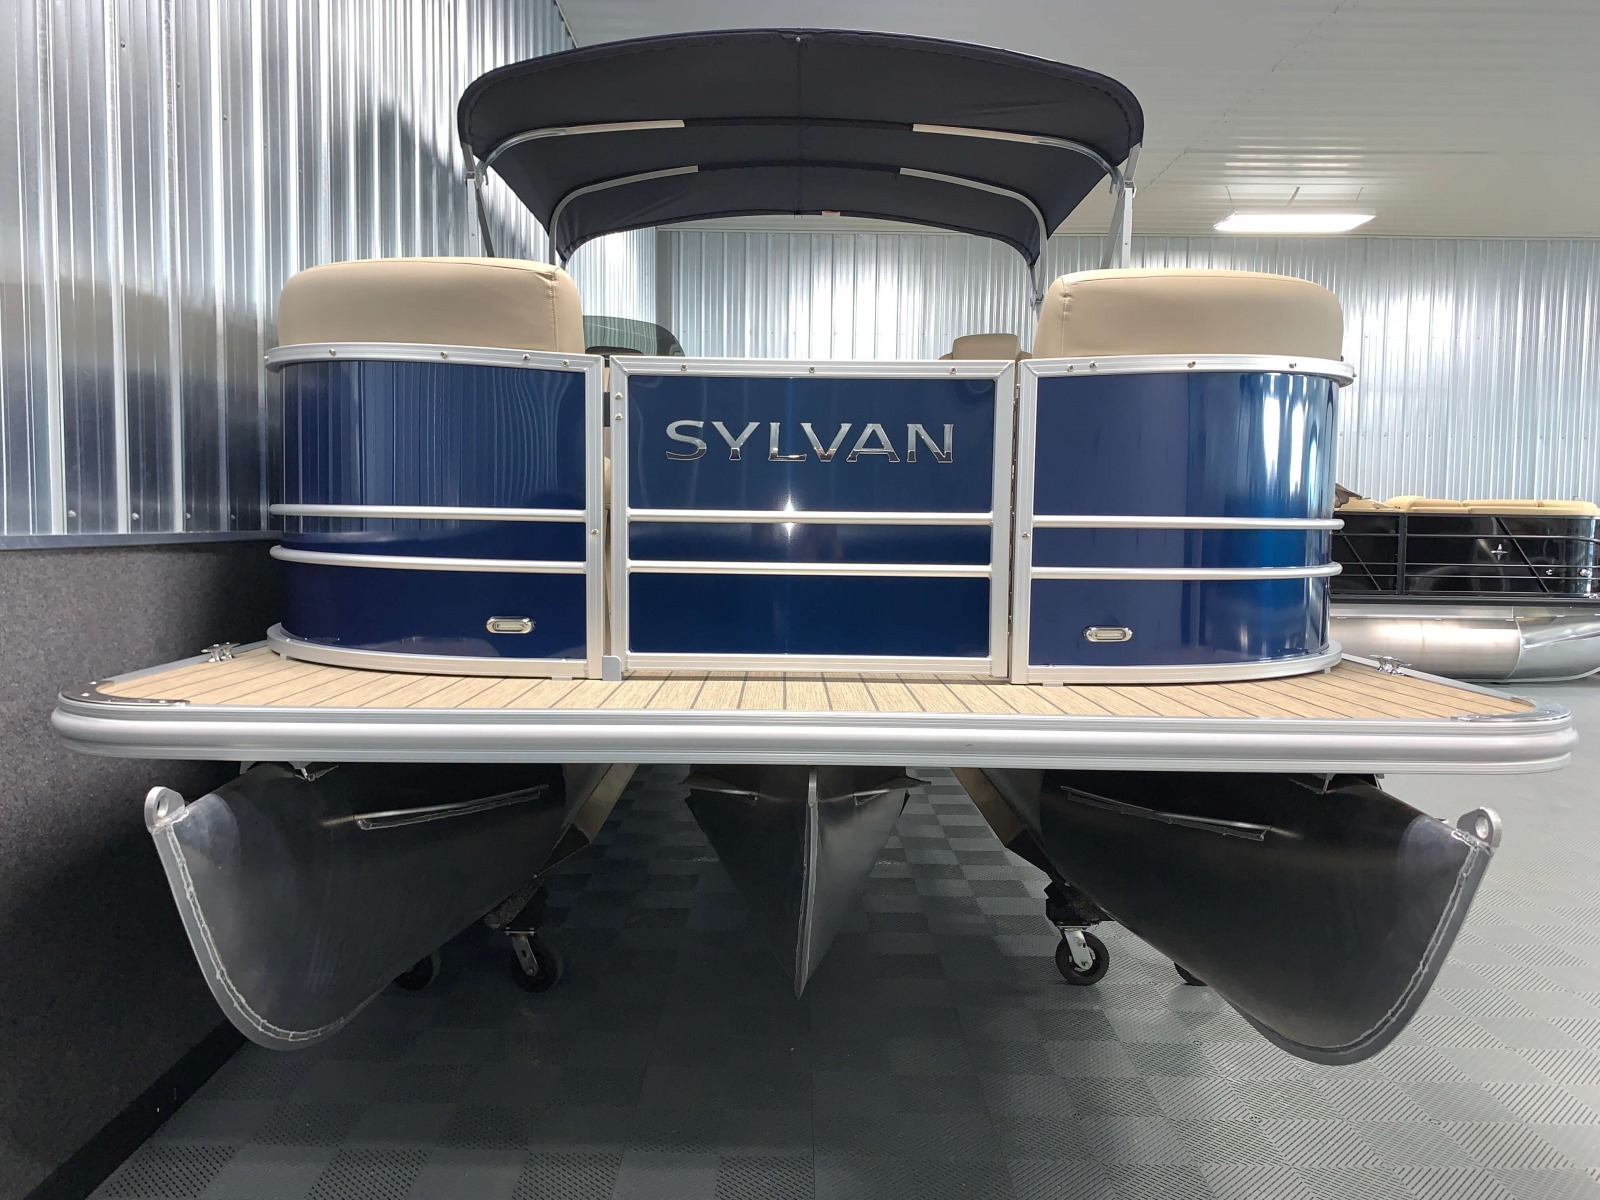 SPX Tritoon Package of a 2020 Sylvan Mirage 8520 LZ Tritoon Boat